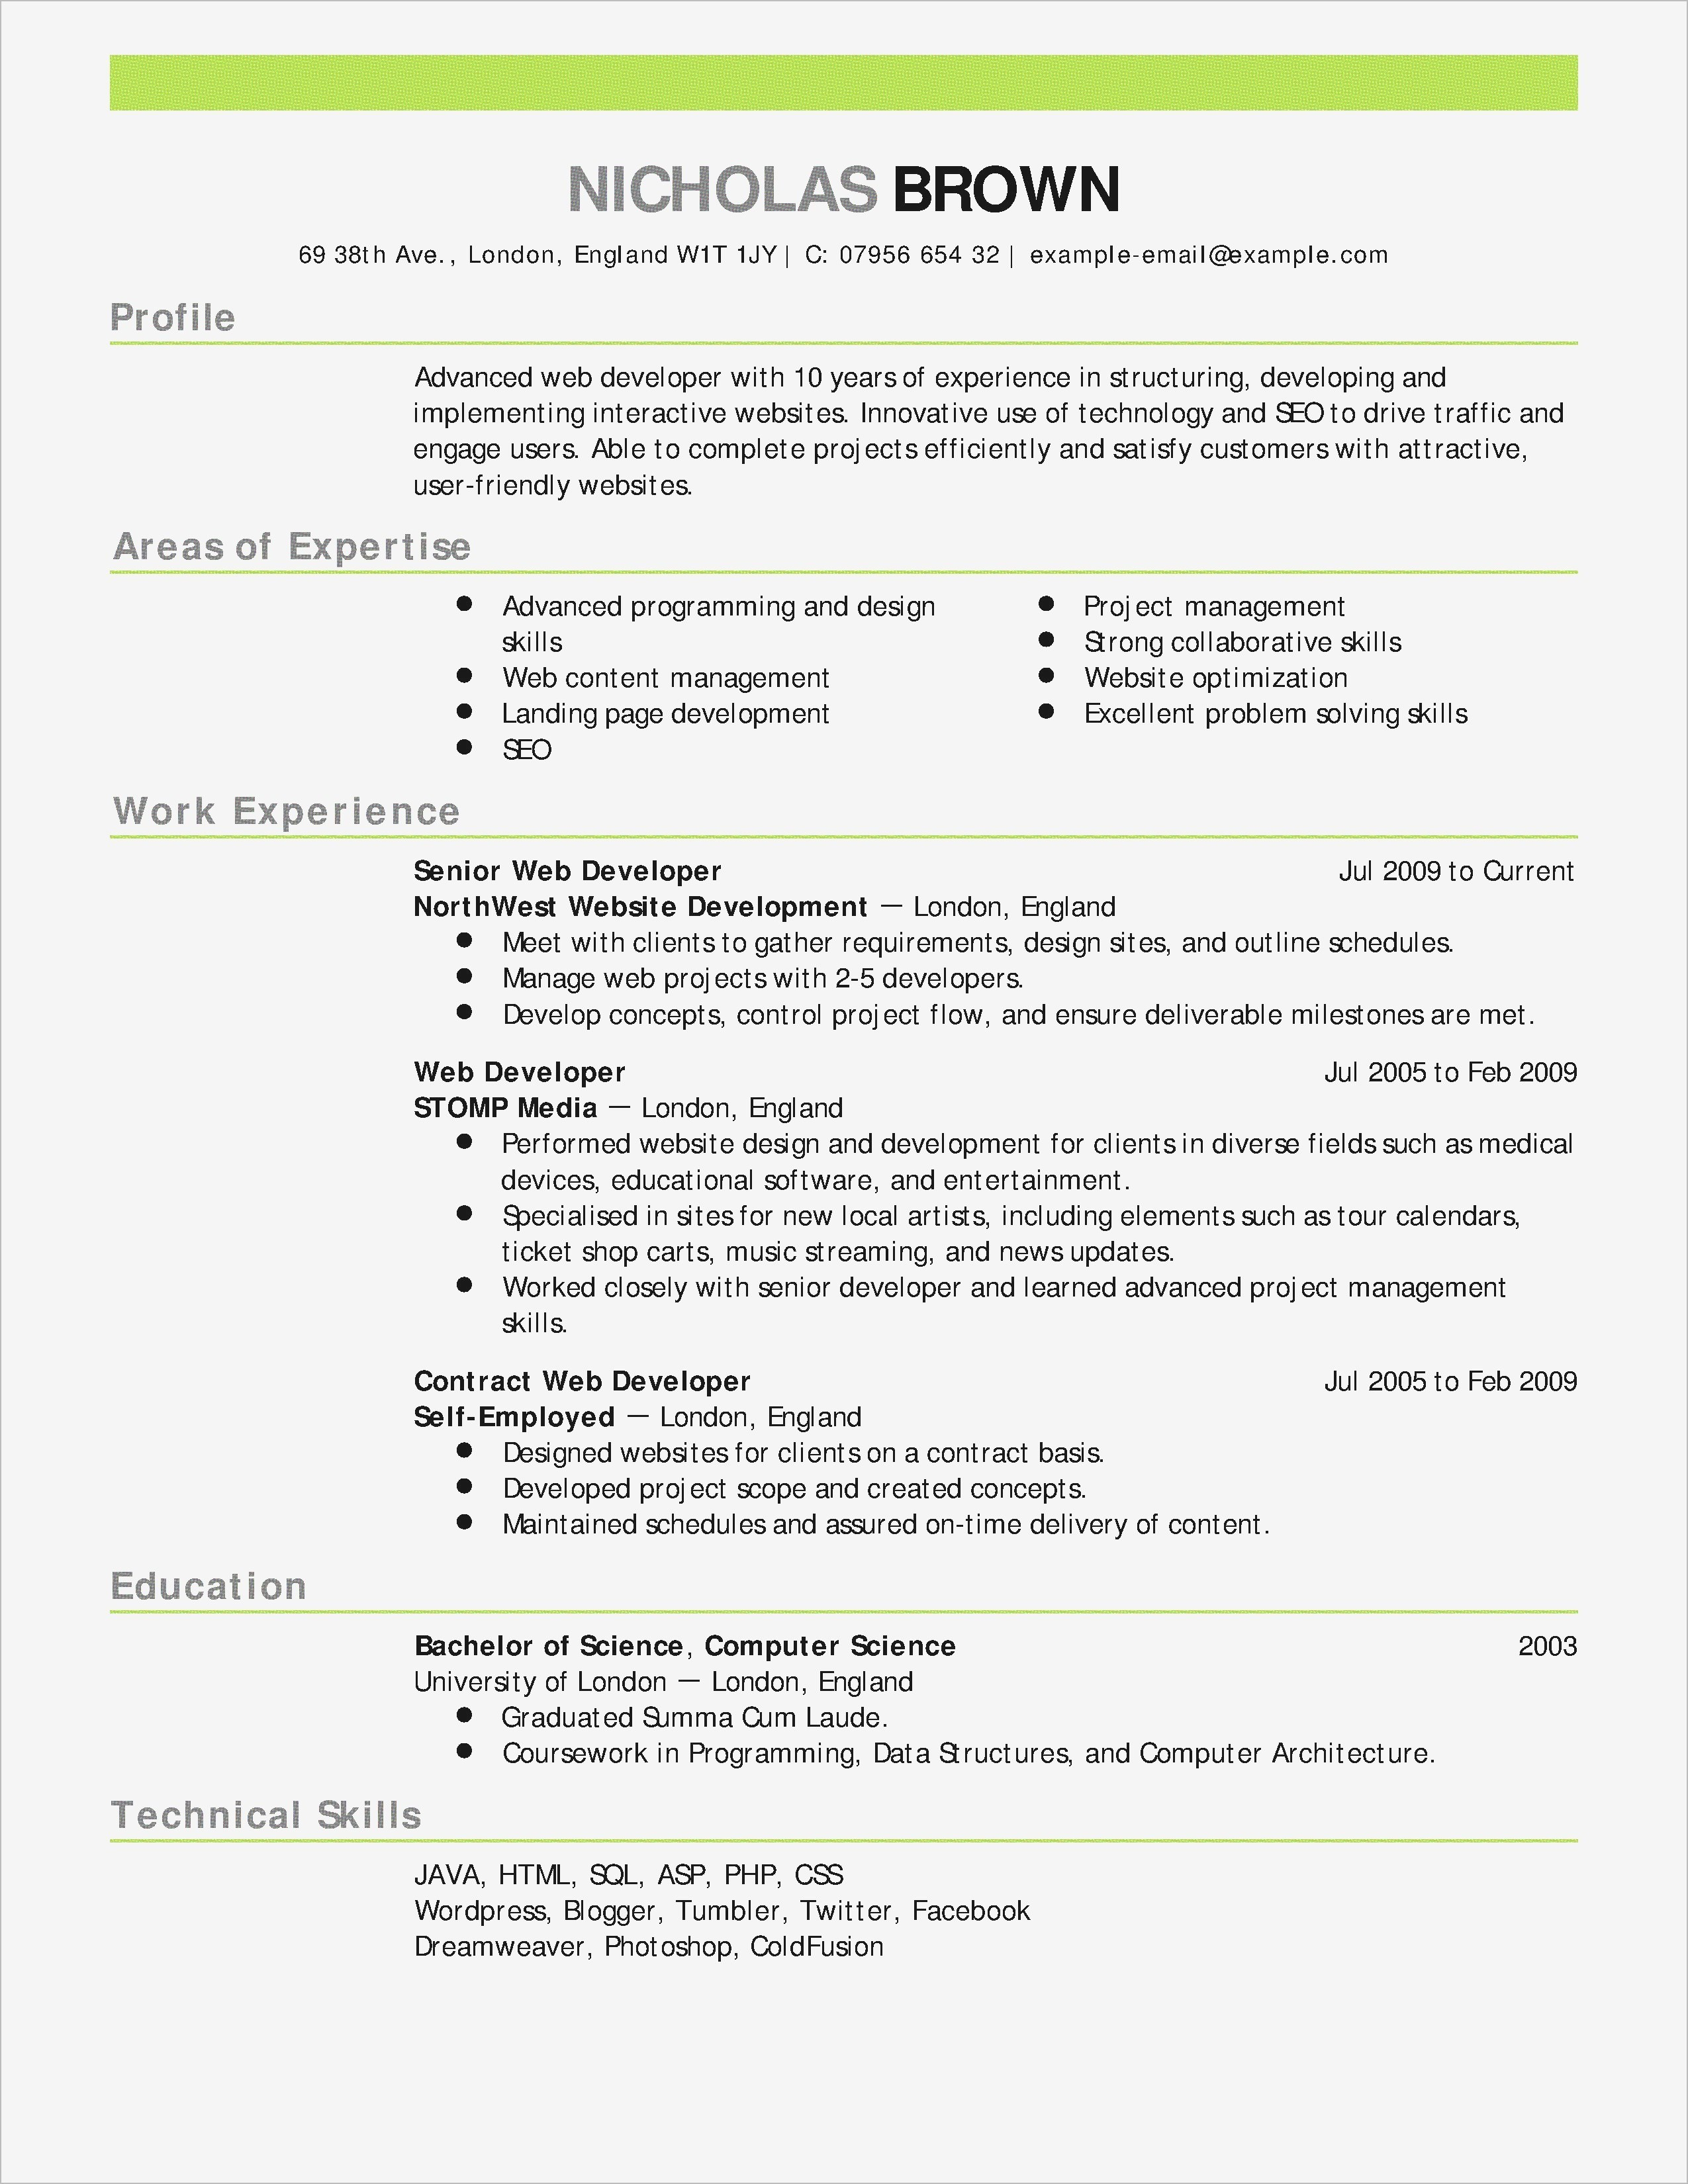 Hospitality Sample Resume - Hospitality Sample Resume